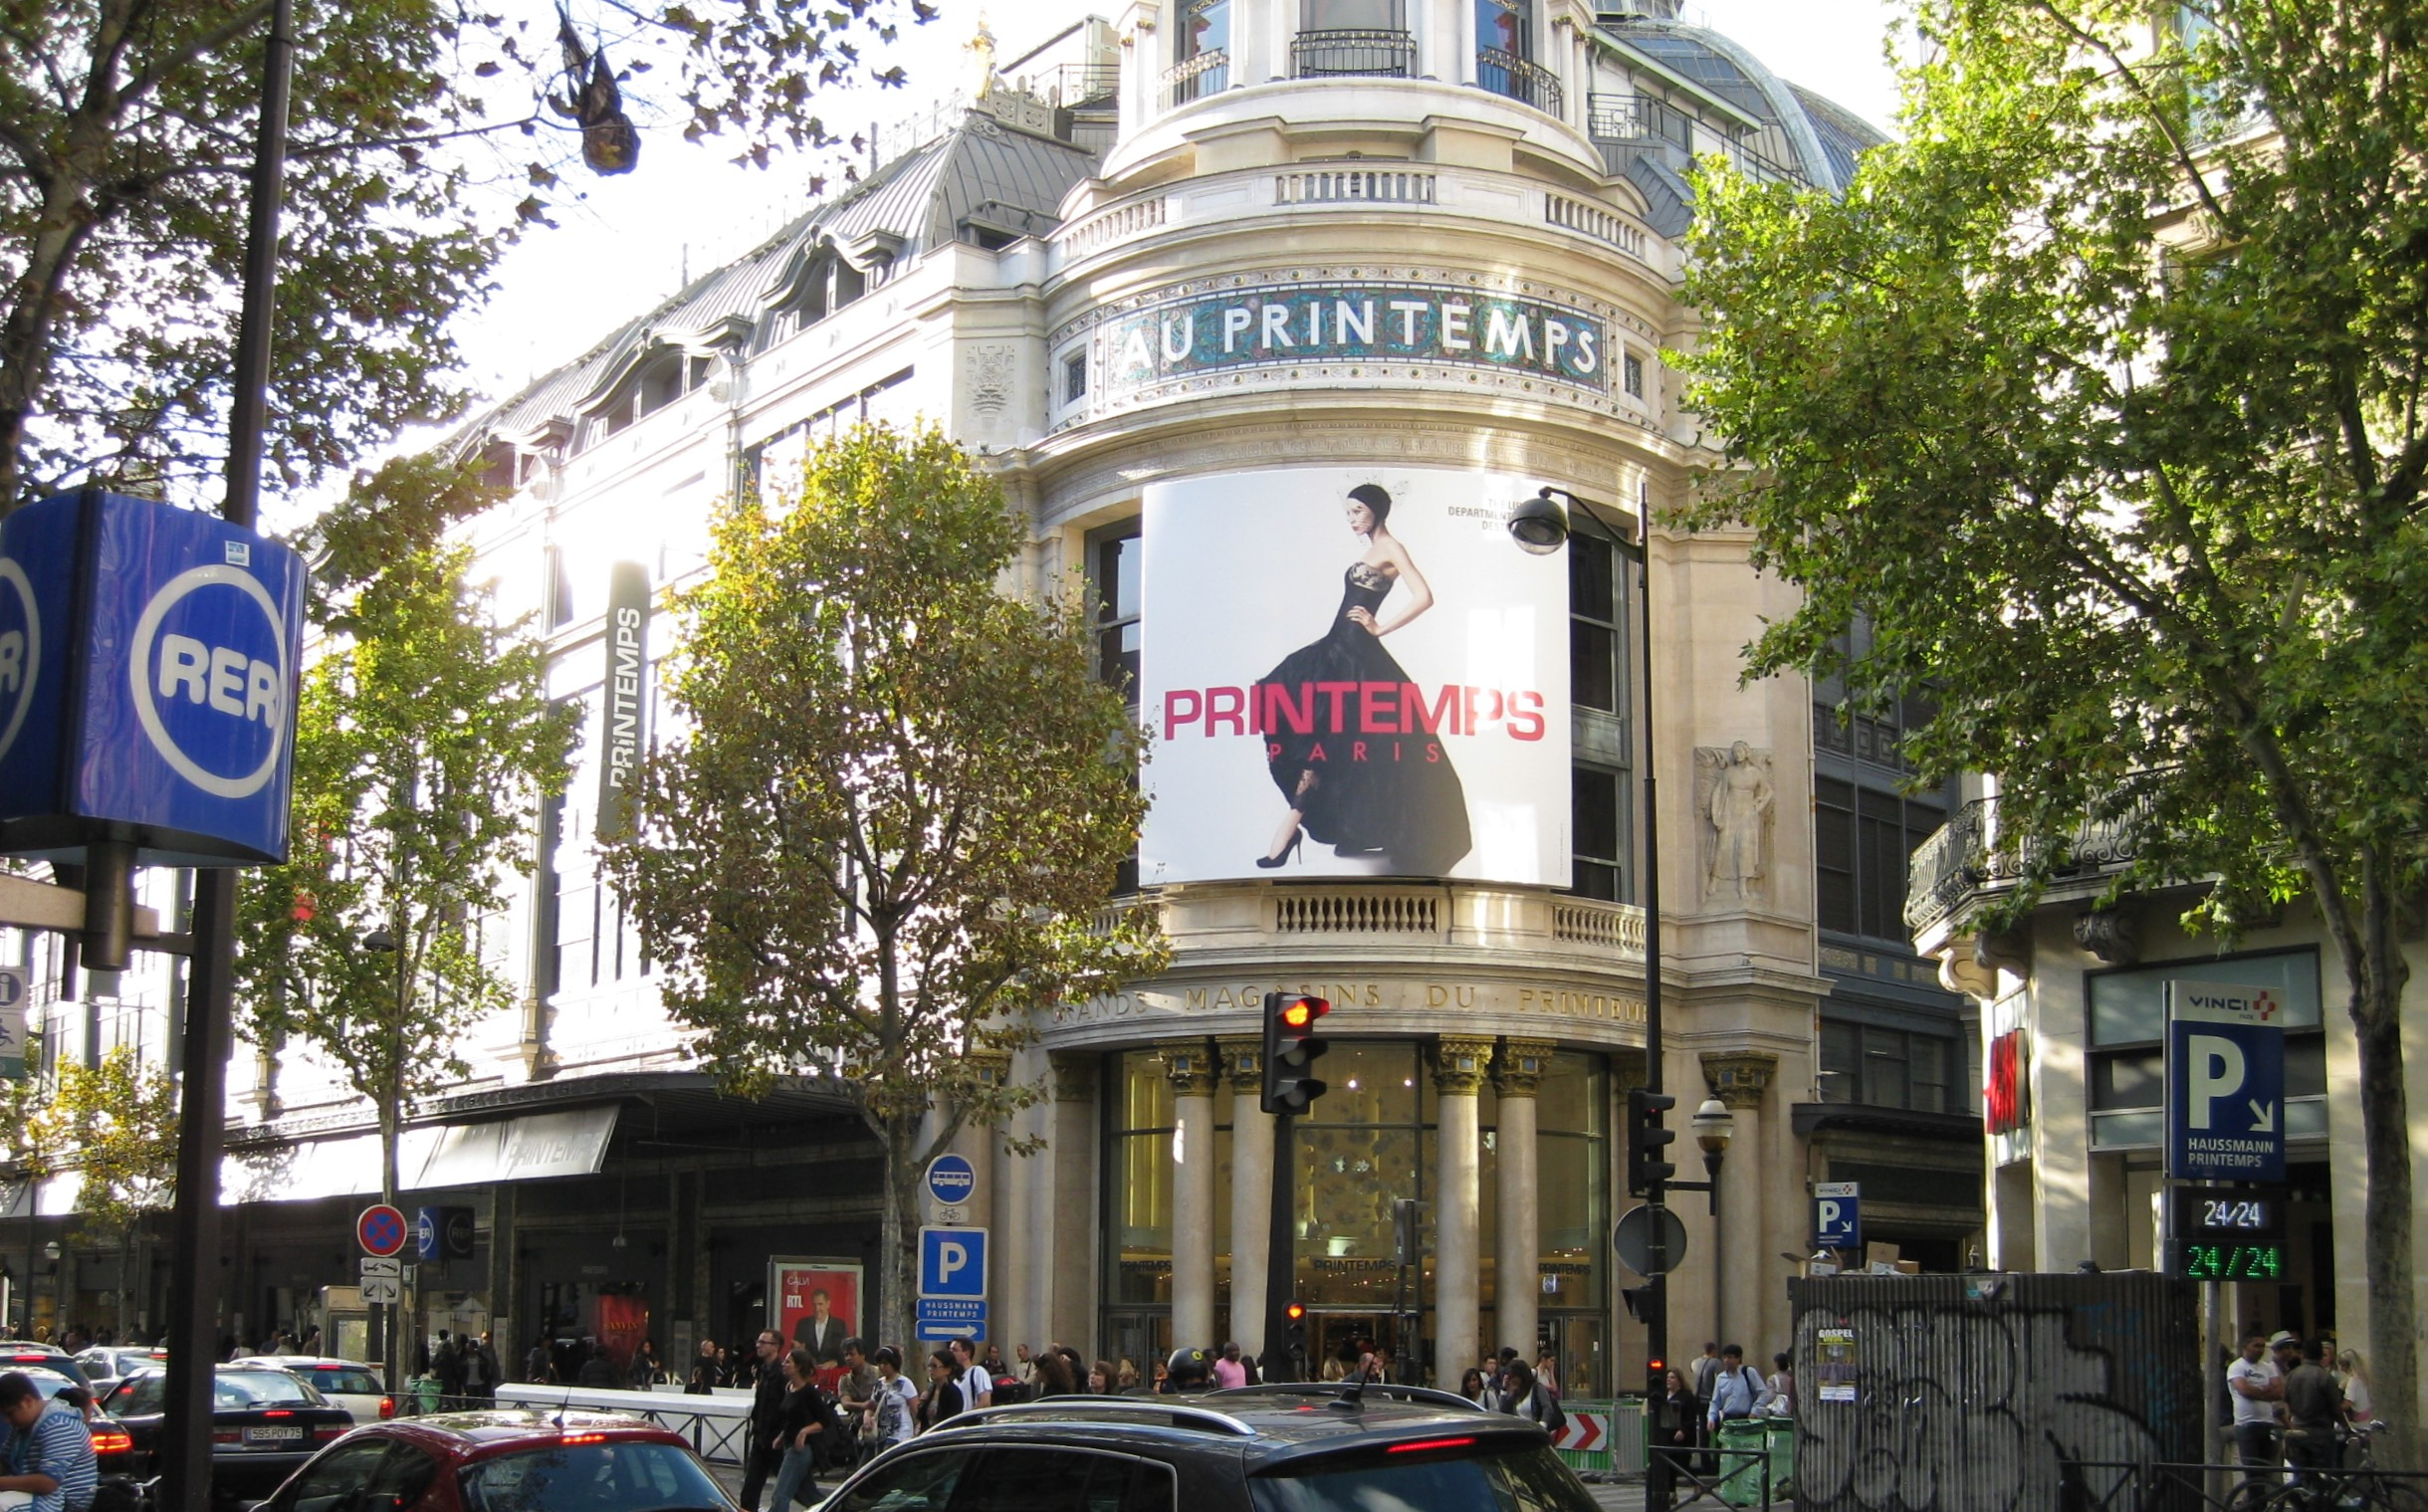 Shoppingtempel in Paris